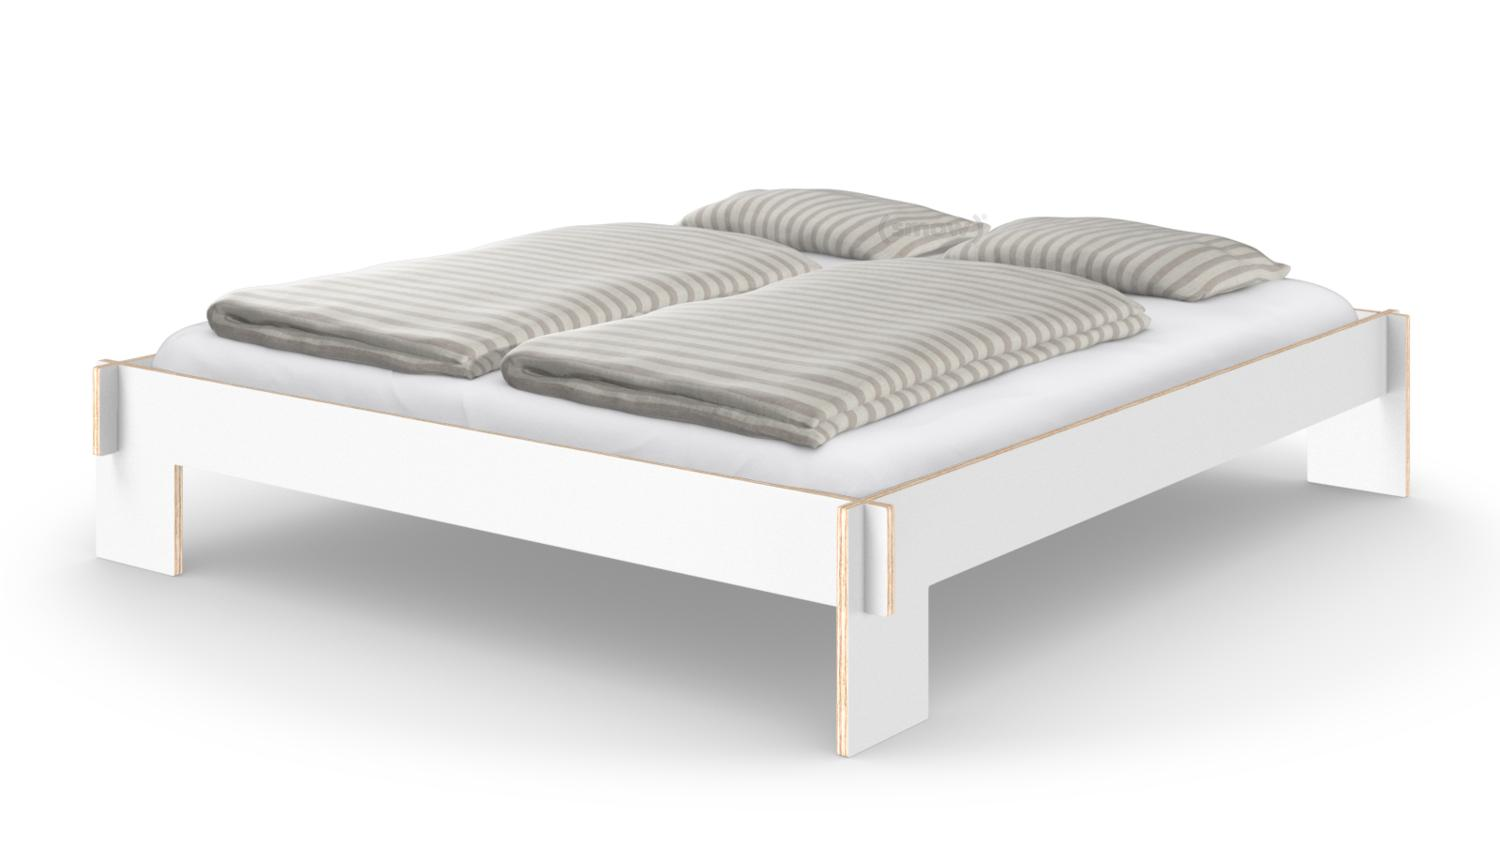 Chaise Nils Nils Holger Moormann Siebenschläfer 180 X 200 Cm Without Headboard White With Slatted Base